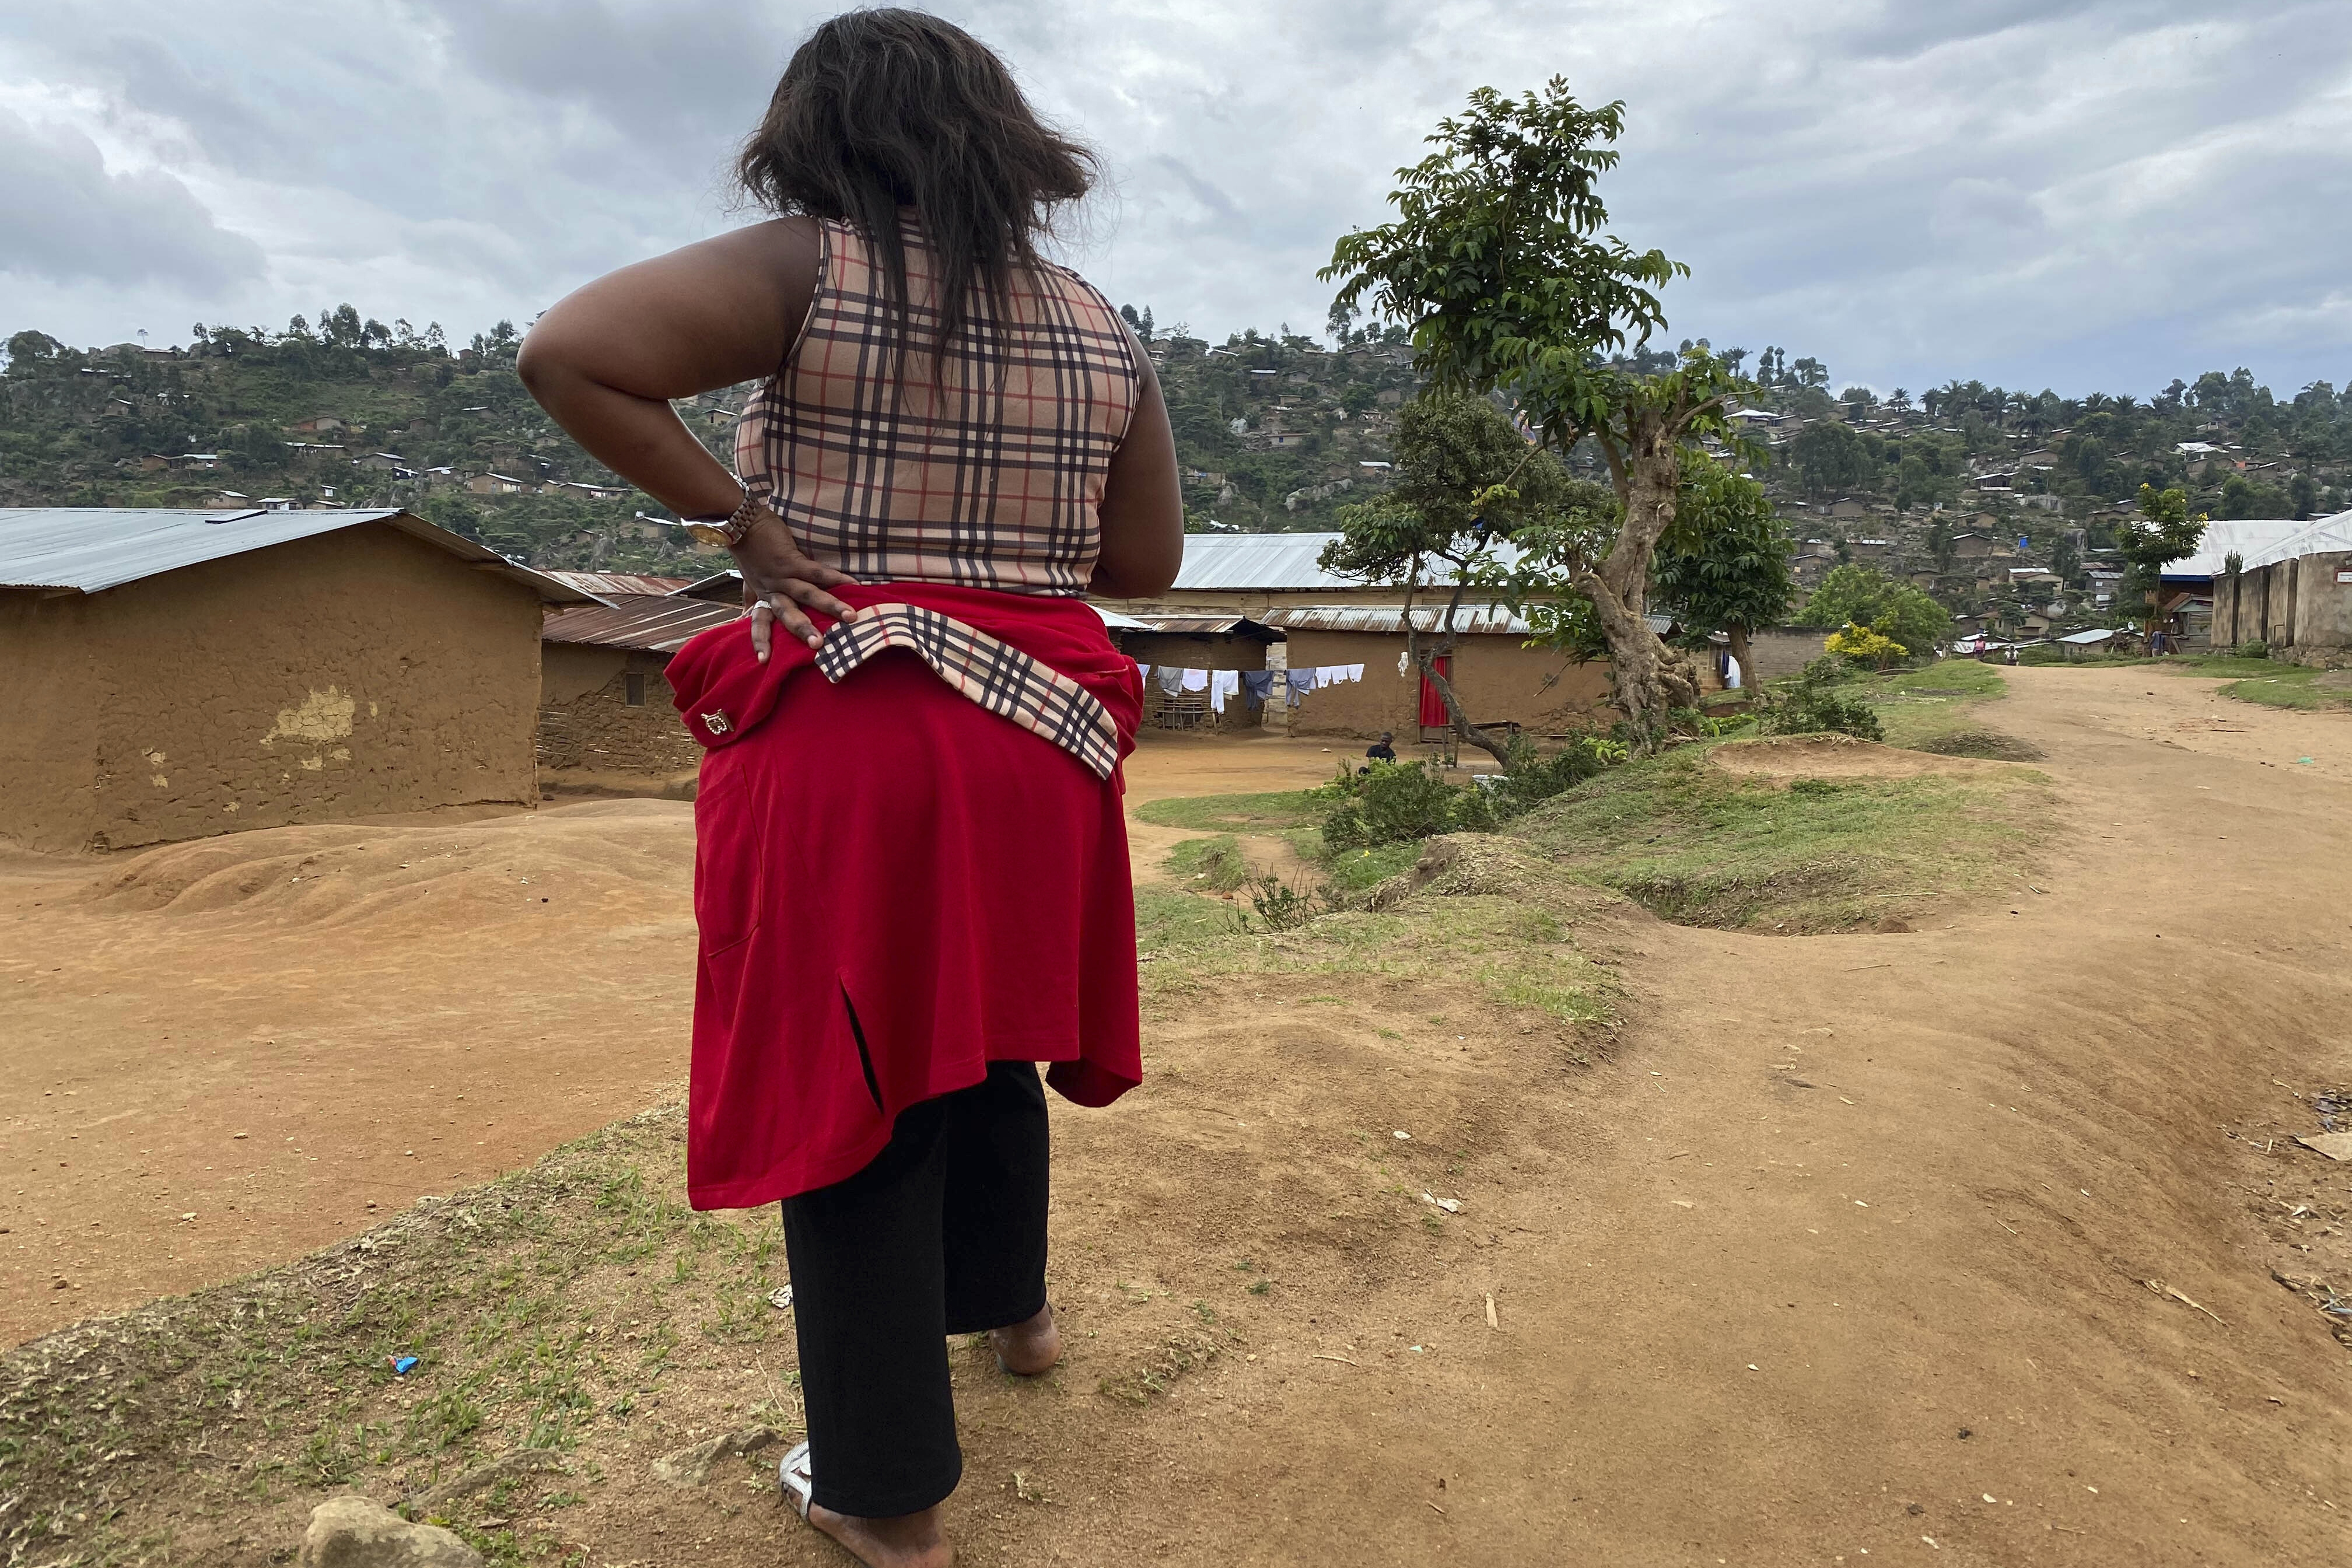 A woman who accused a WHO worker of sexual abuse near her home in Beni, eastern Congo